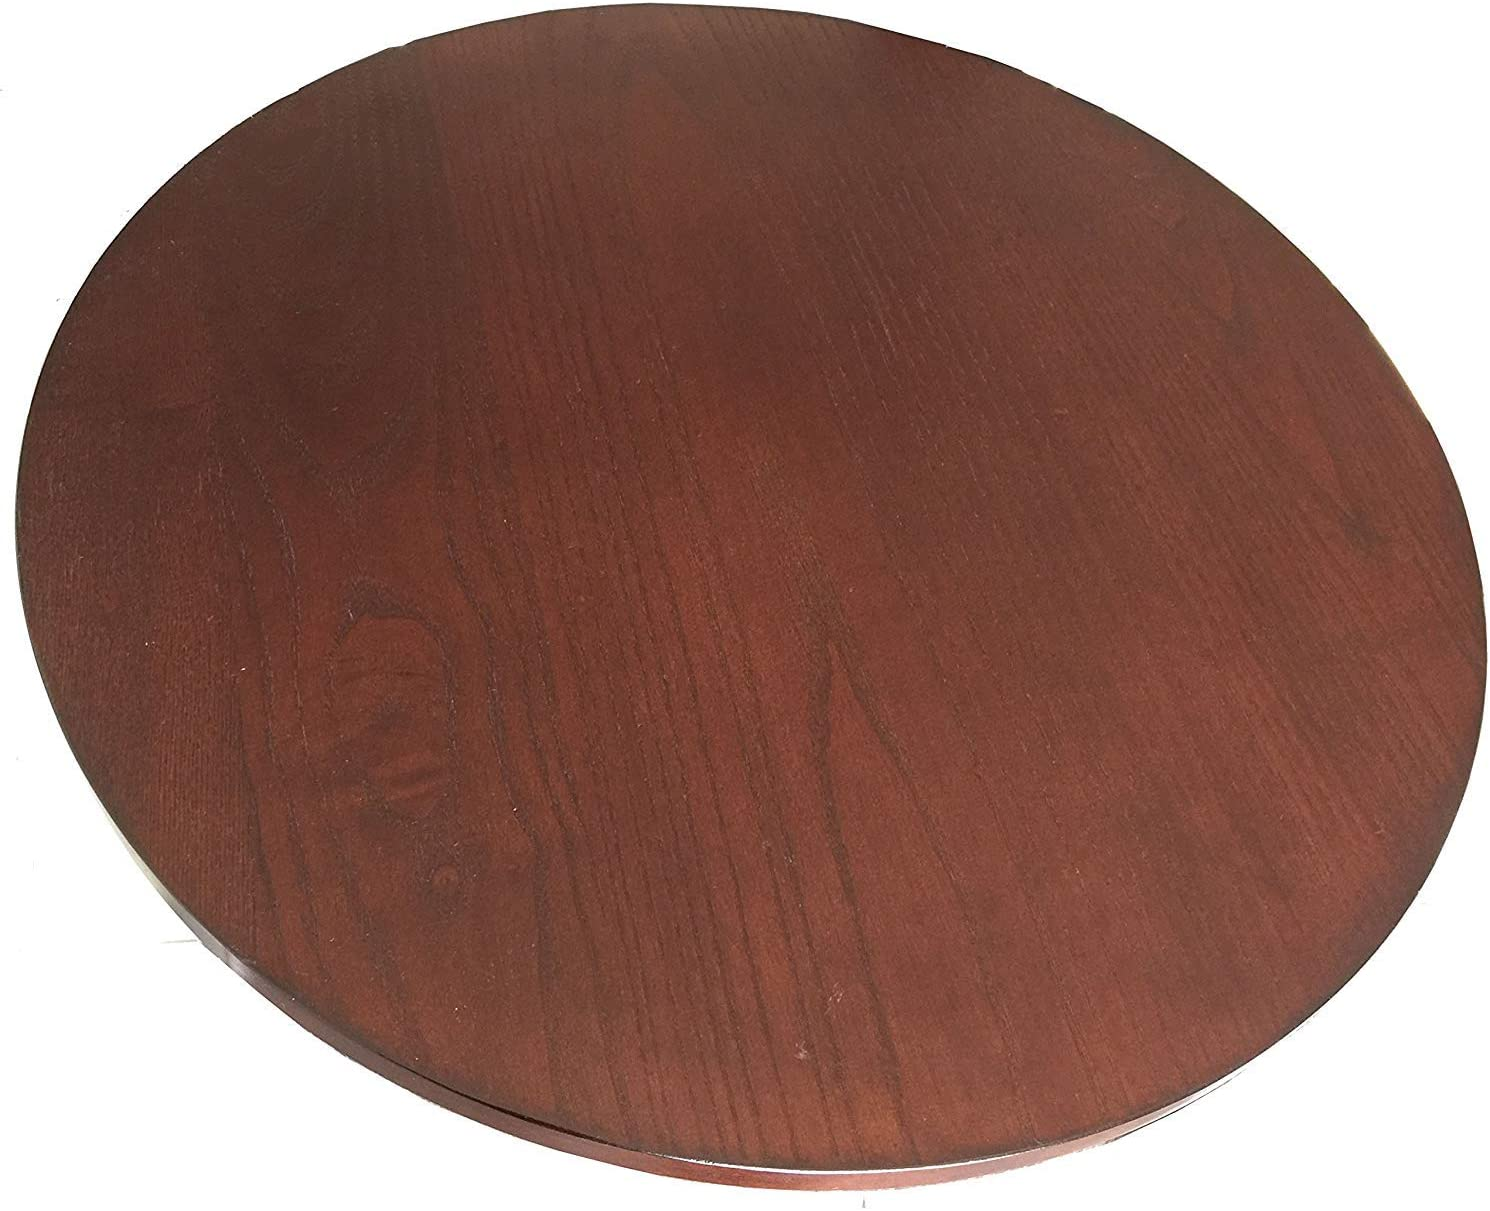 CM 21-in Diameter Brown New Shipping Free Wood Gifts Rotating Susan Turntable - Big Lazy